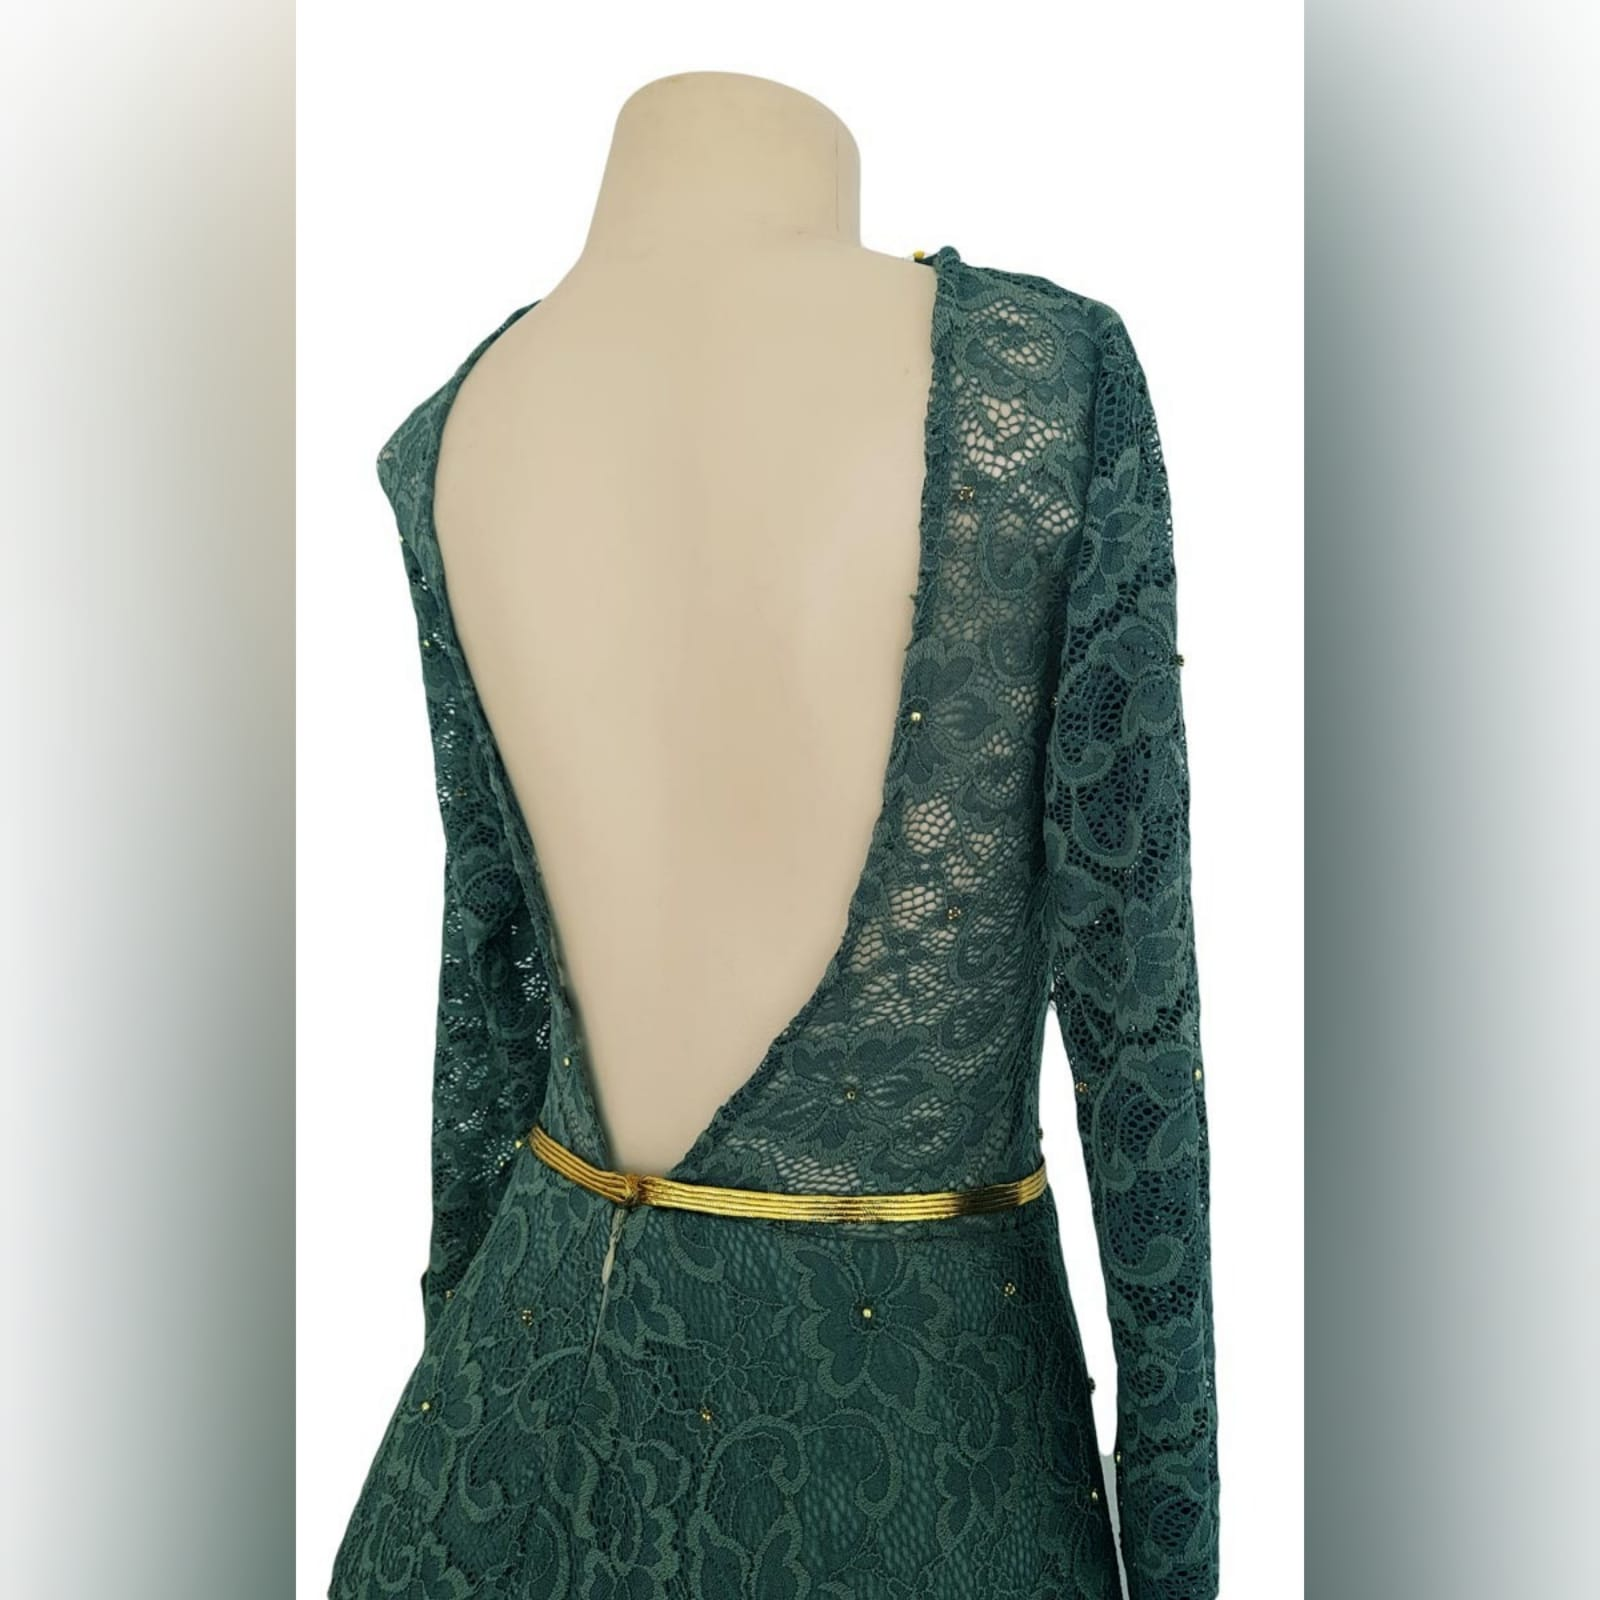 Tea length fully lace olive green evening dress 7 reneilwe looked charming with her tea length fully lace olive green evening dress. Bodice in sheer lace with long sleeves and open back for a feminine touch. With scattered gold beads and a thin removable gold belt to give it a chic look.